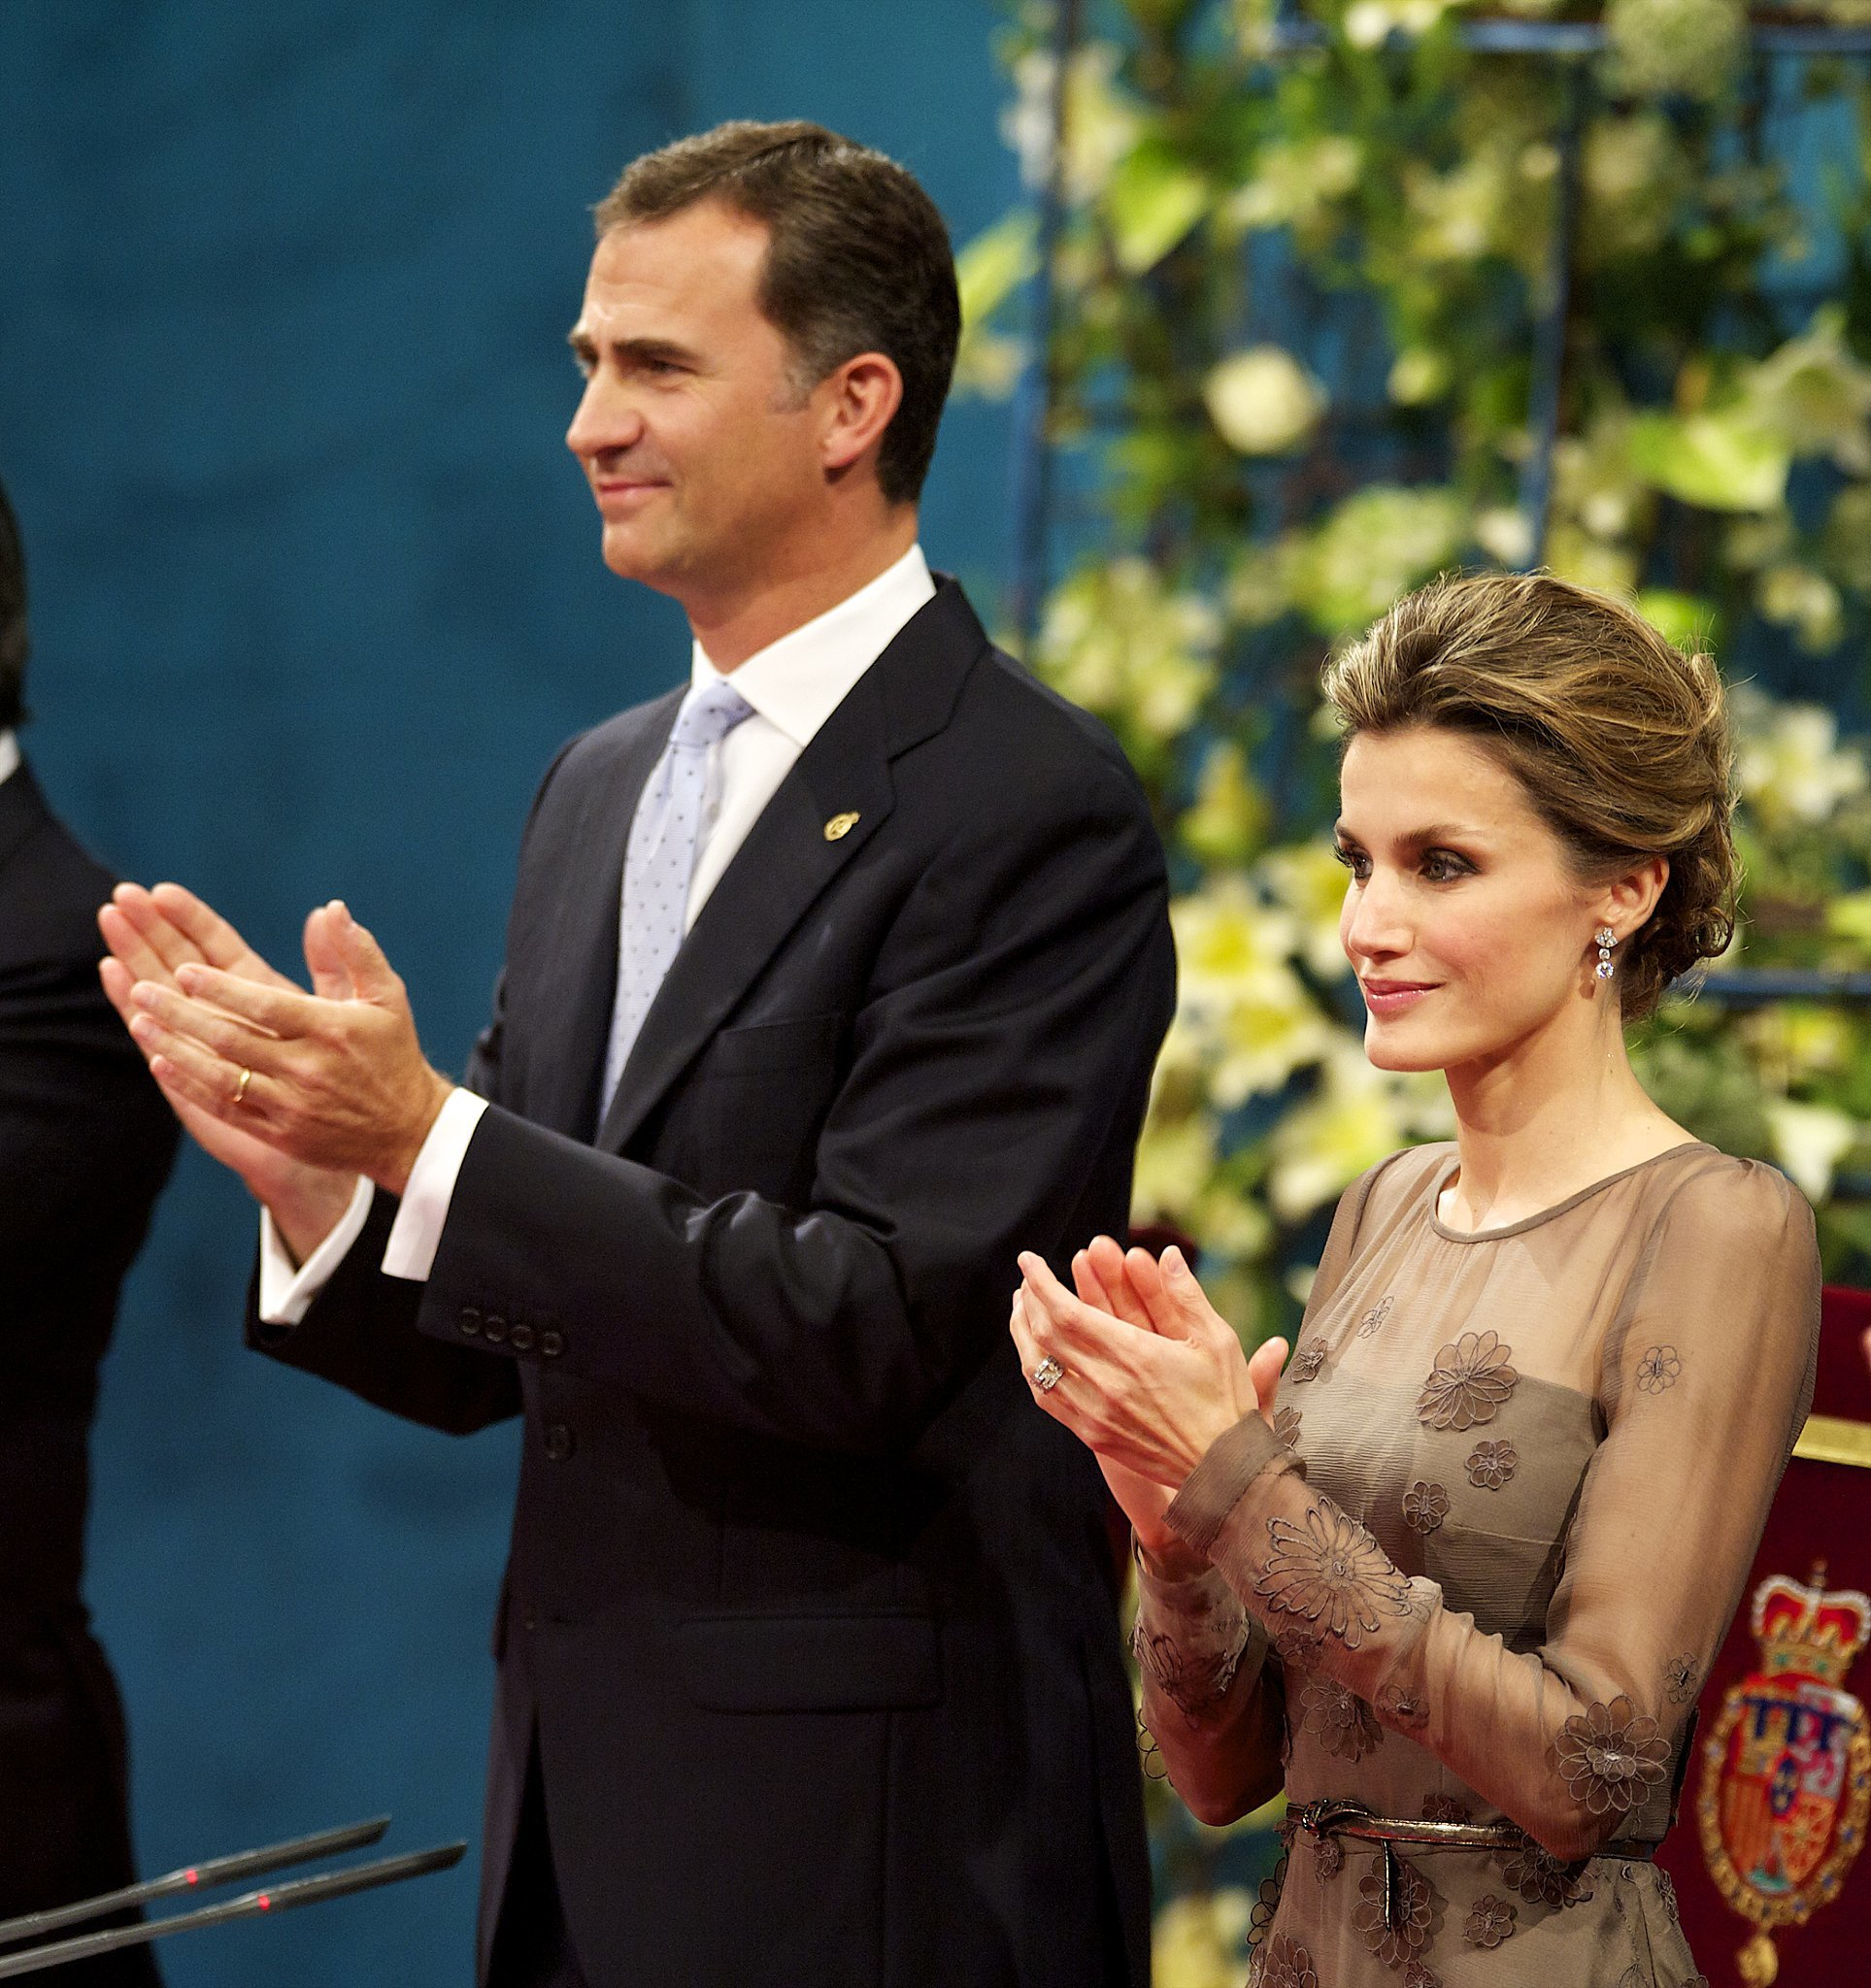 The royal couple looked elegant for the Prince of Asturias Awards ceremony in October 2011.